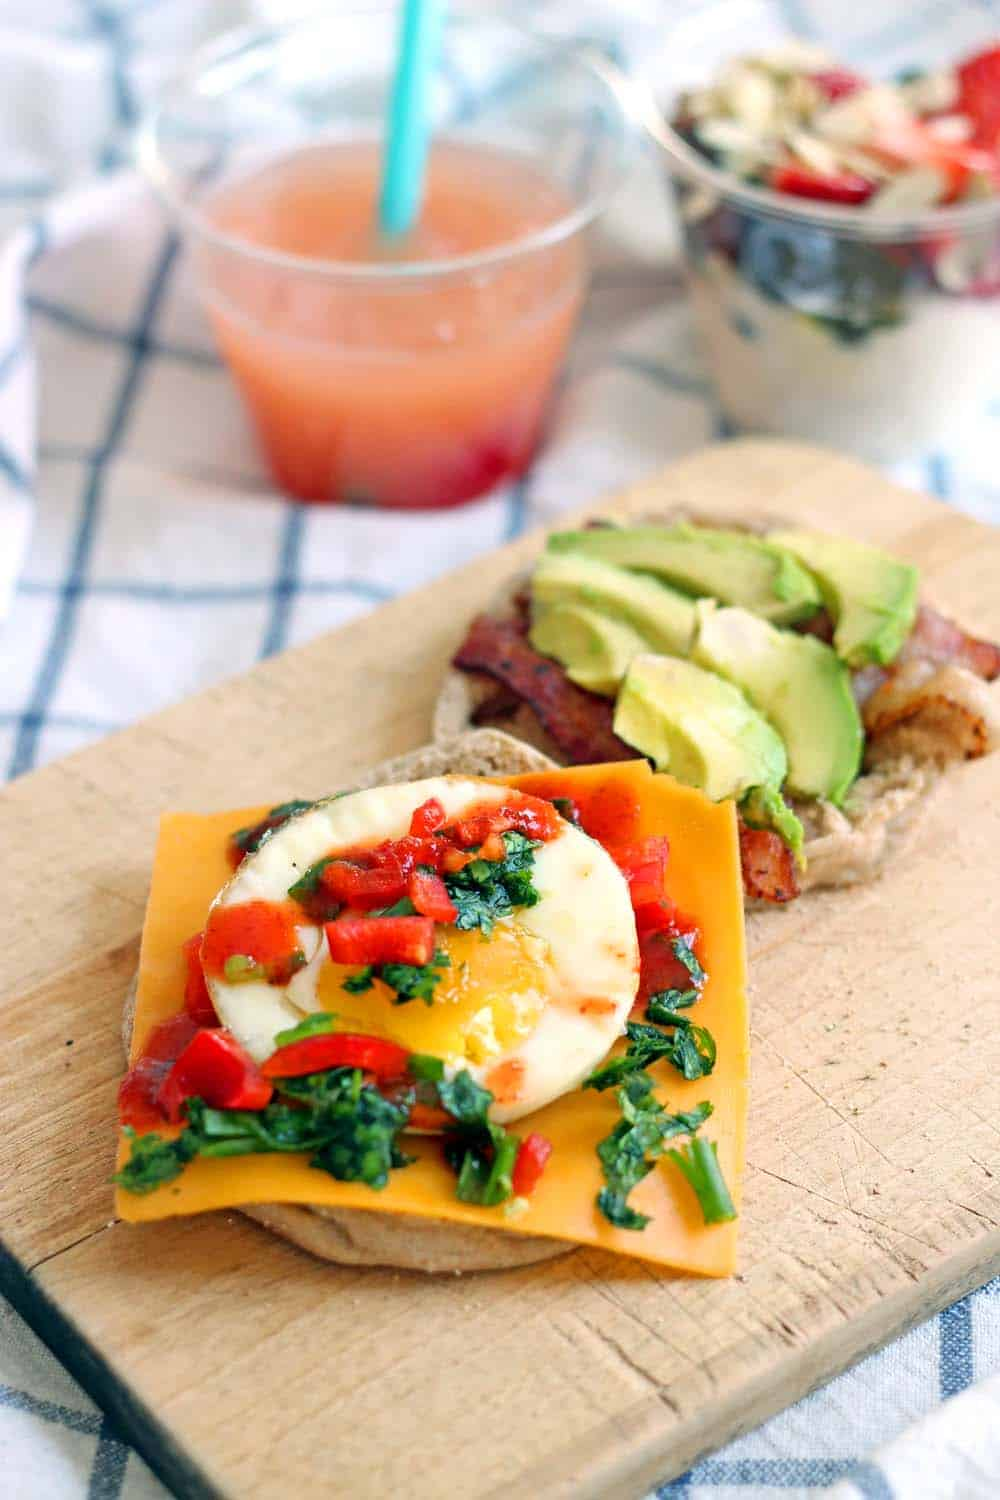 Breakfast sandwich with eggs, cheese, bacon, aliced avocado, and chopped vegetable toppings on a wooden cutting board.